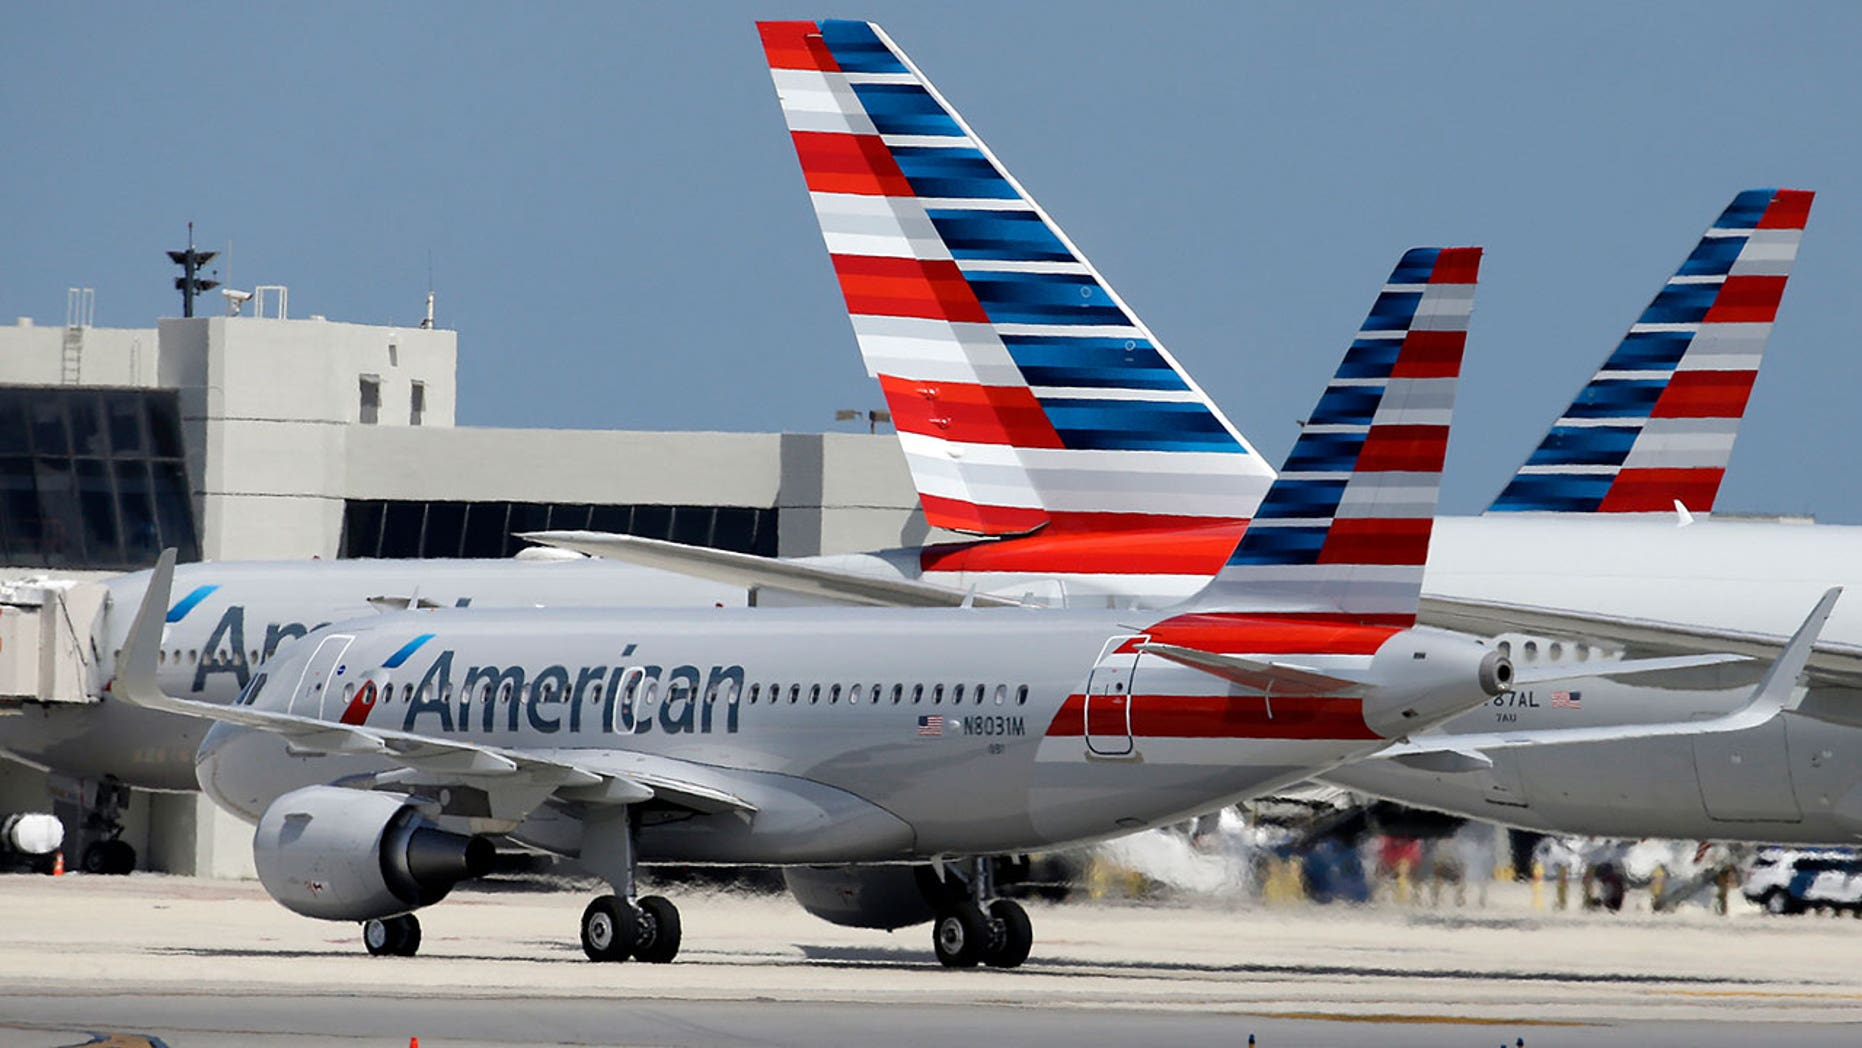 An American Airlines spokesperson told Travel + Leisure that the tweet was meant to be a direct response to a traveler asking about advanced seat assignments.